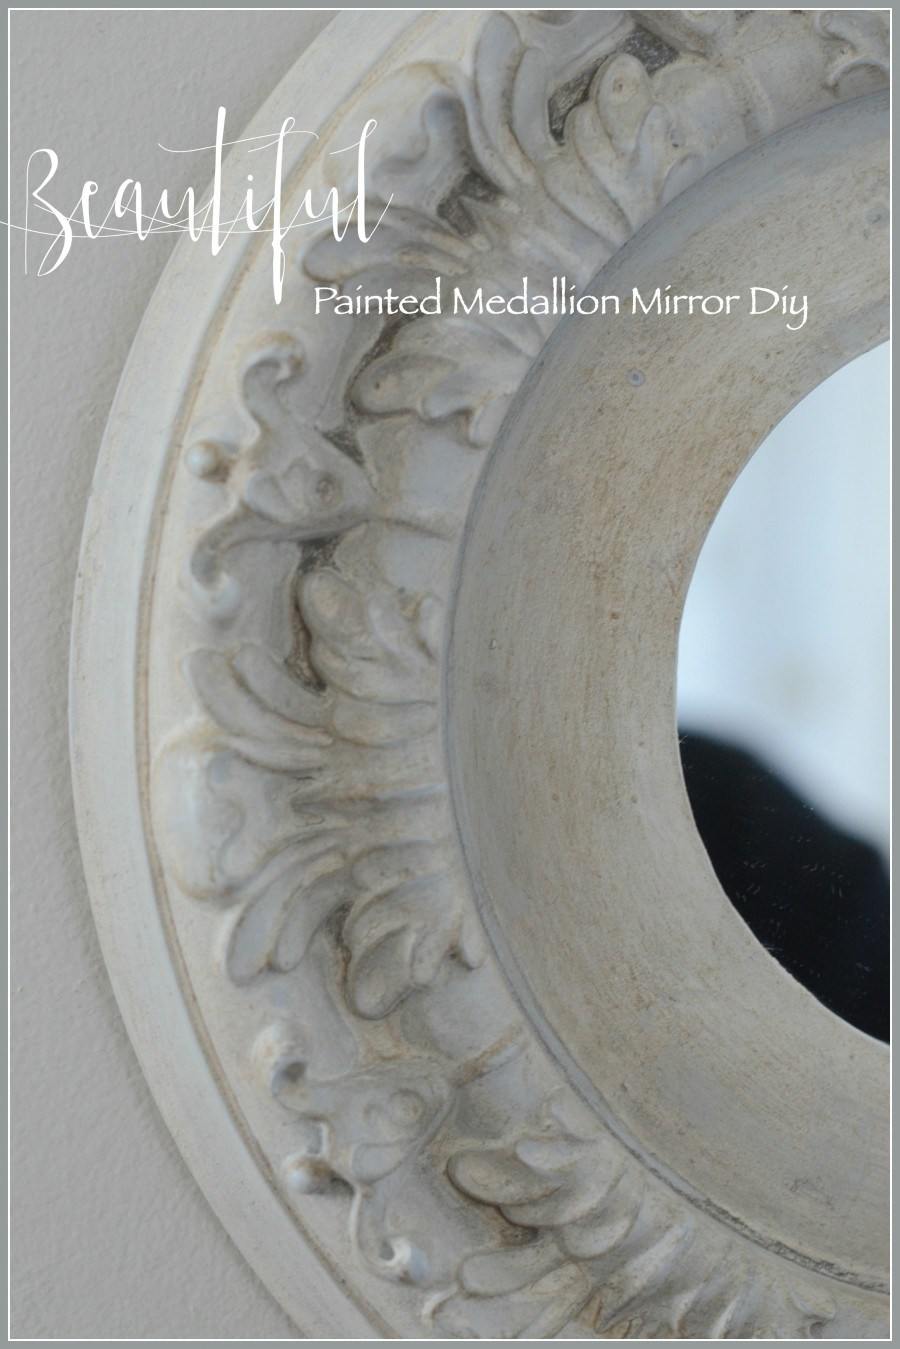 Stone Gable - Painted Medallion Mirror